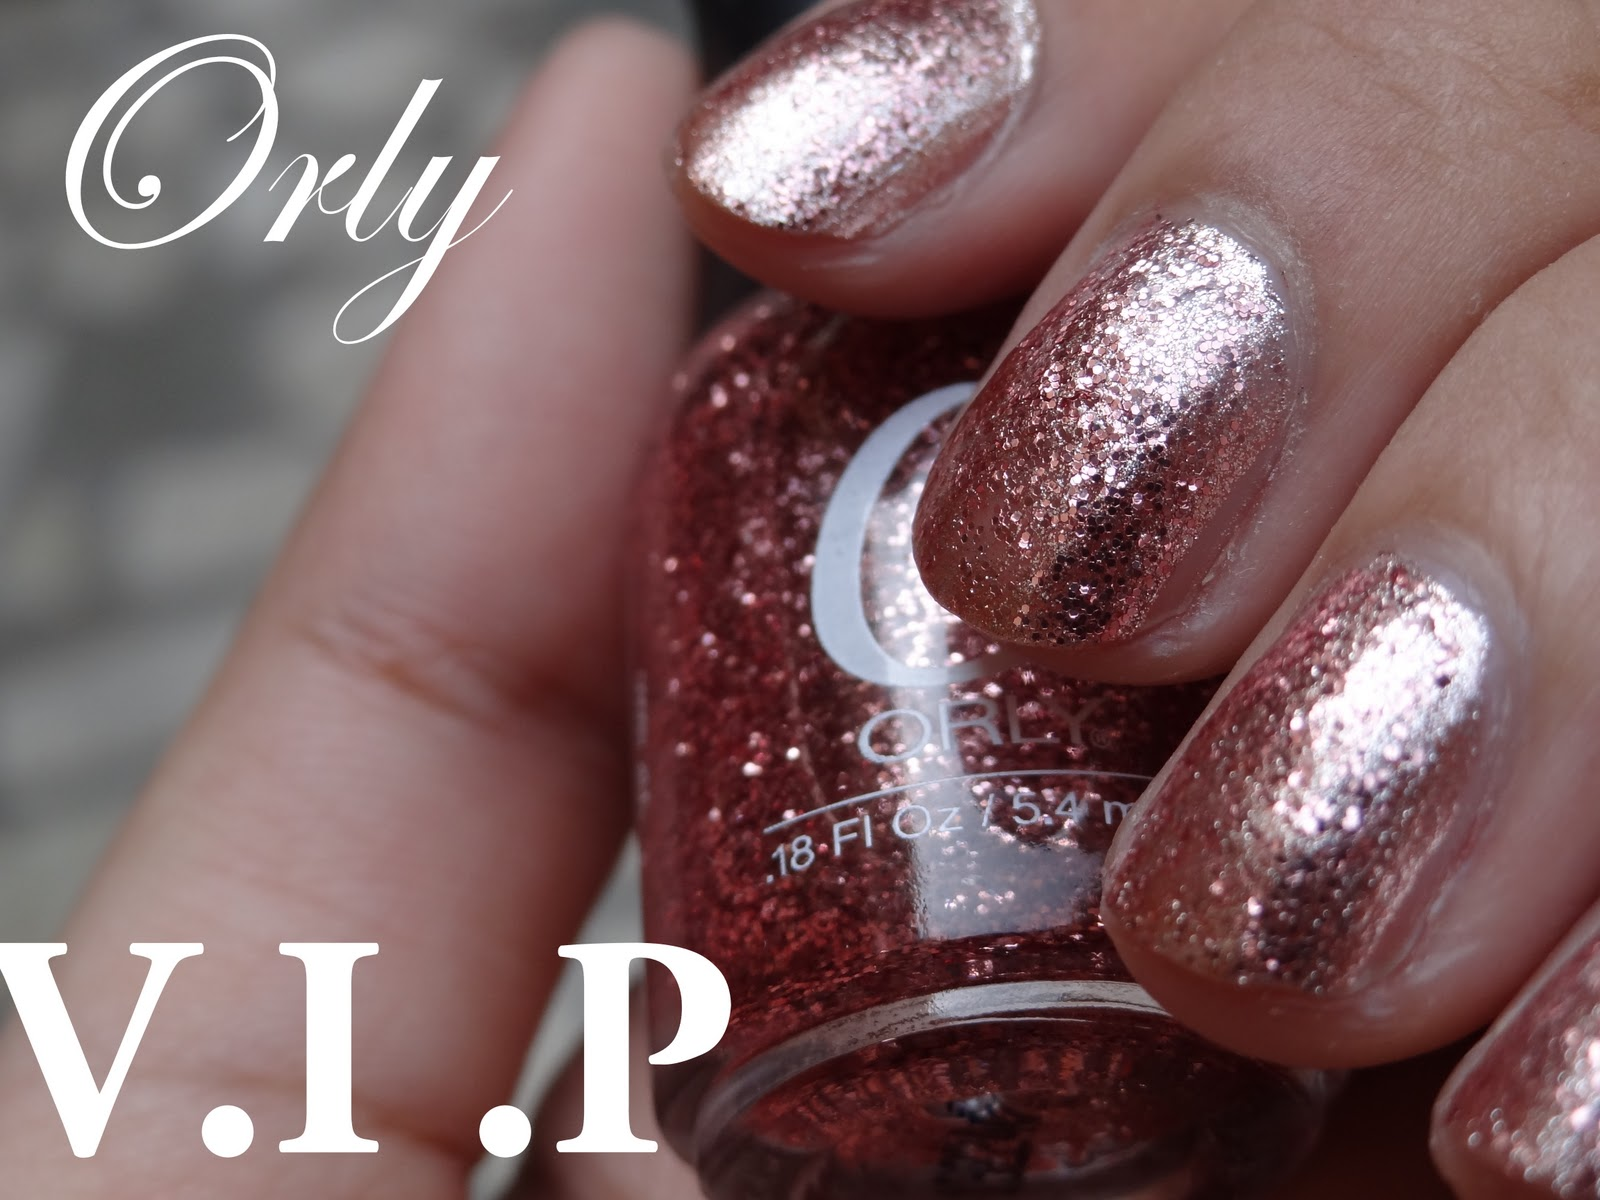 Orly VIP layered over Orly Rage